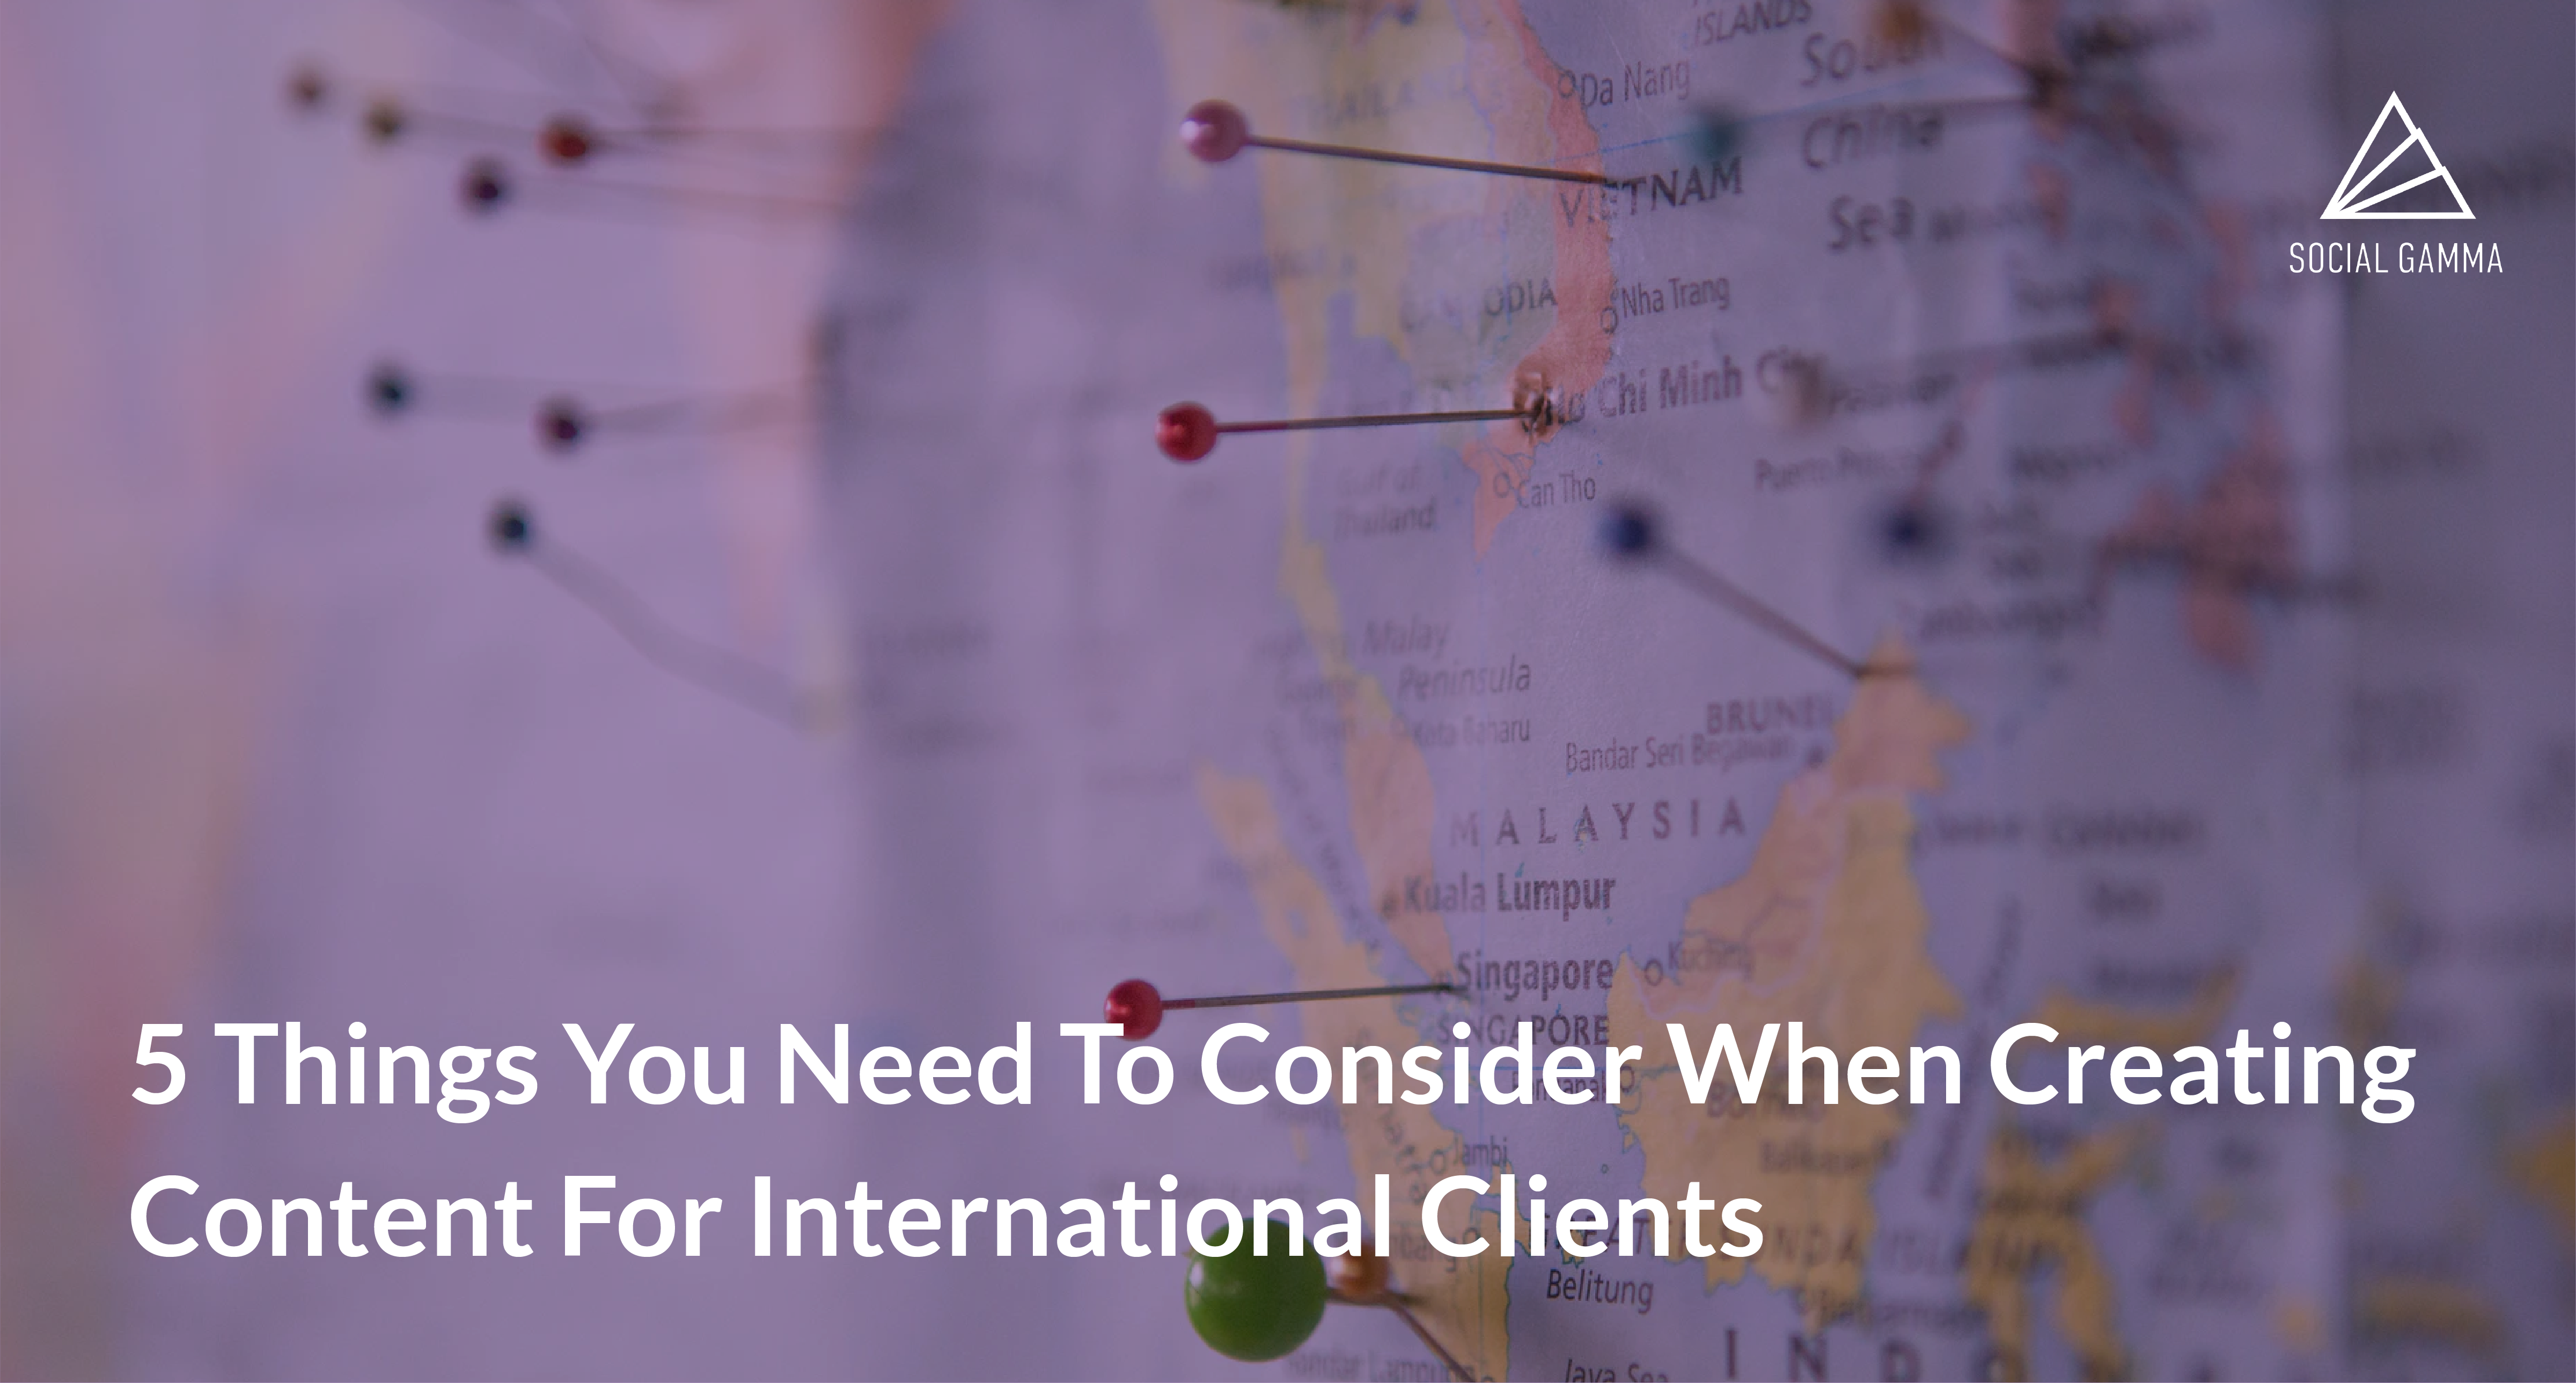 5 Things You Need To Consider When Creating Content For International Clients